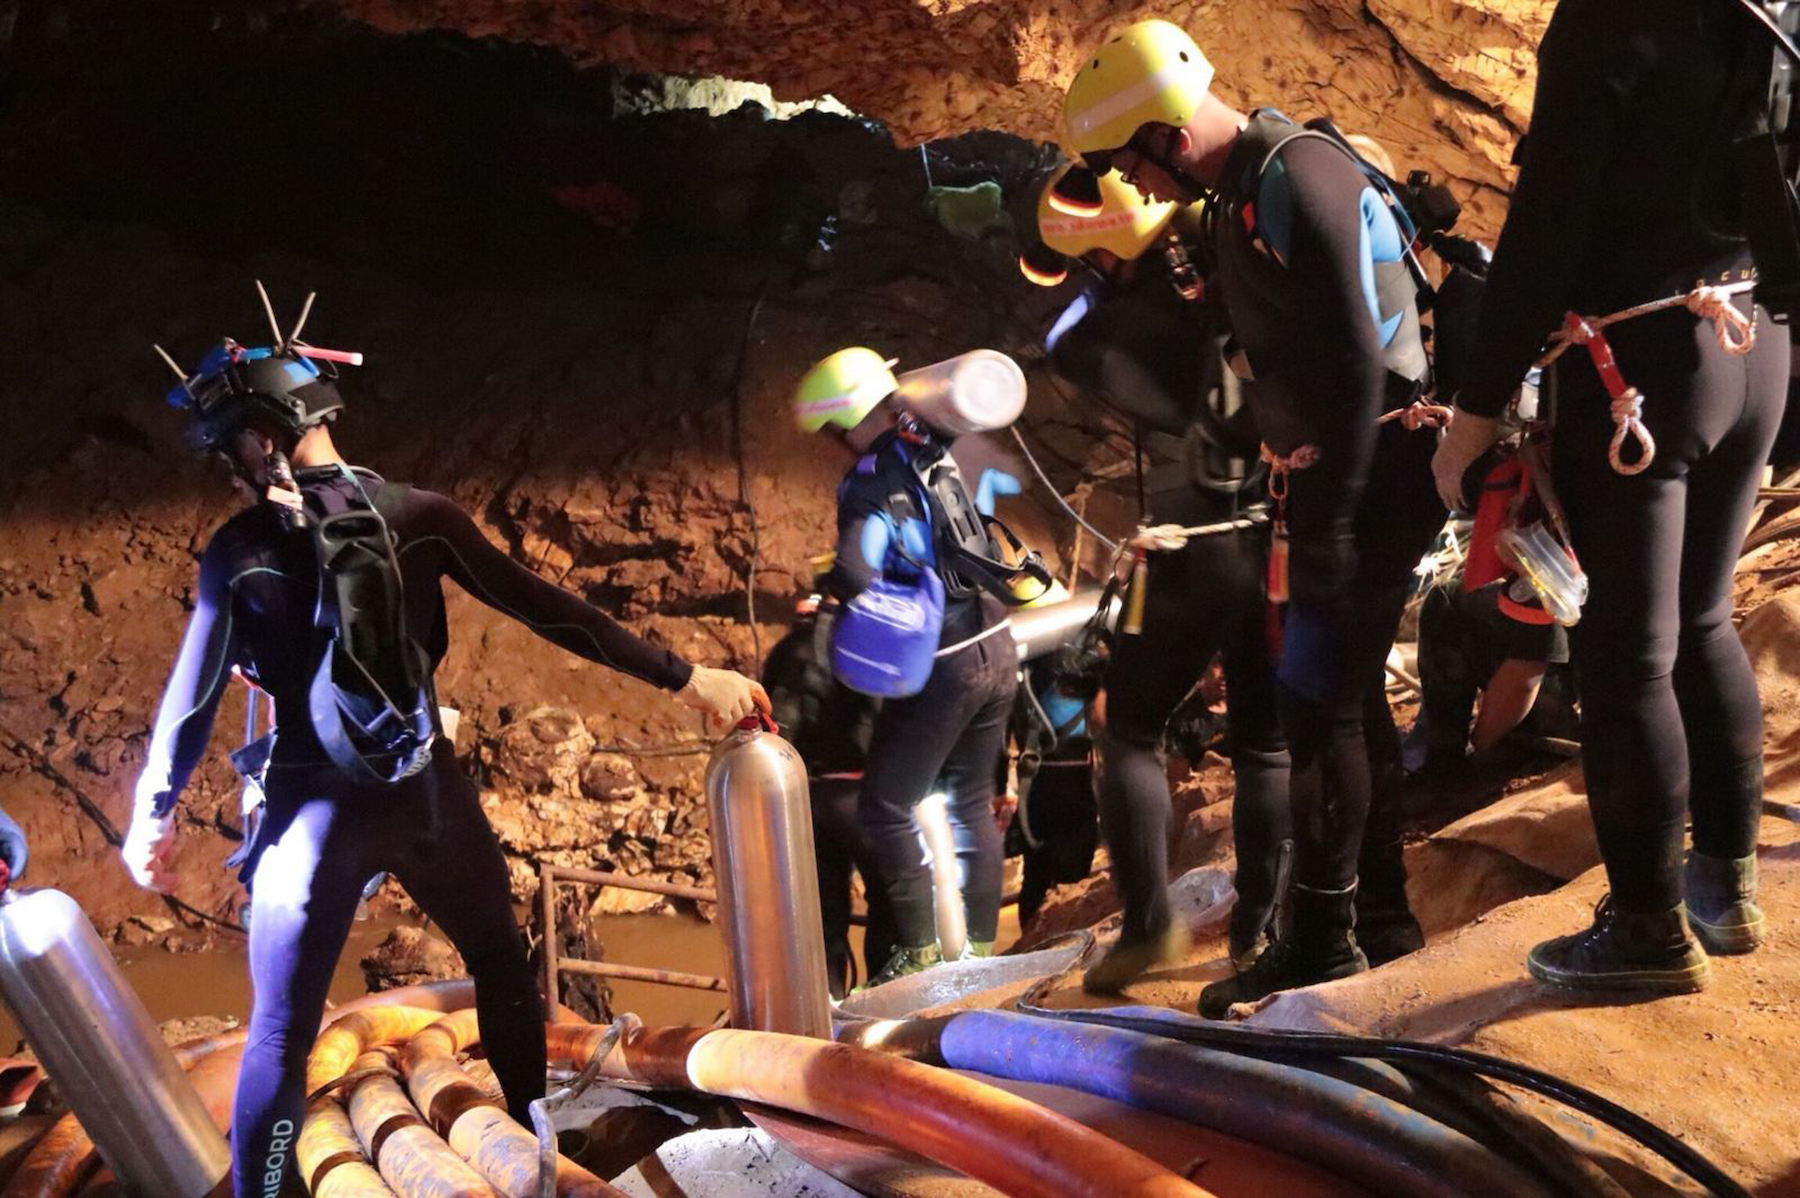 "<div class=""meta image-caption""><div class=""origin-logo origin-image ap""><span>AP</span></div><span class=""caption-text"">Thai rescue teams walk inside cave complex where 12 boys and their soccer coach went missing in Mae Sai, Chiang Rai province, northern Thailand. (Thai Navy via AP)</span></div>"